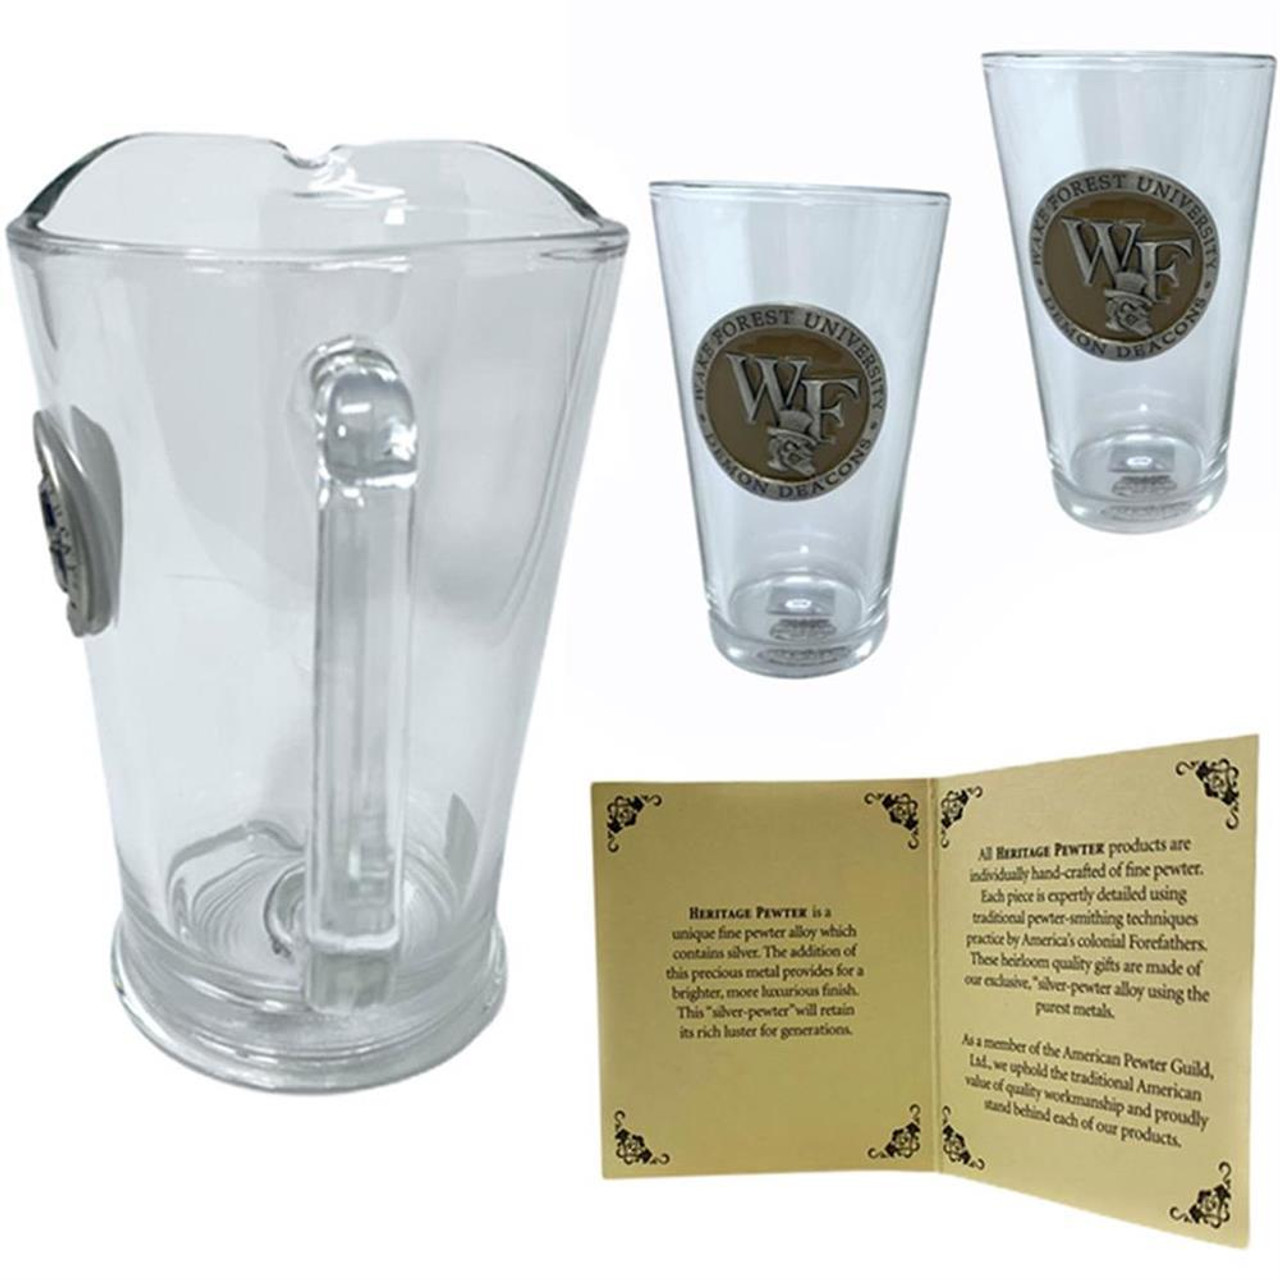 Appalachian State Pitcher and 2 Pint Glass Set Beer Set